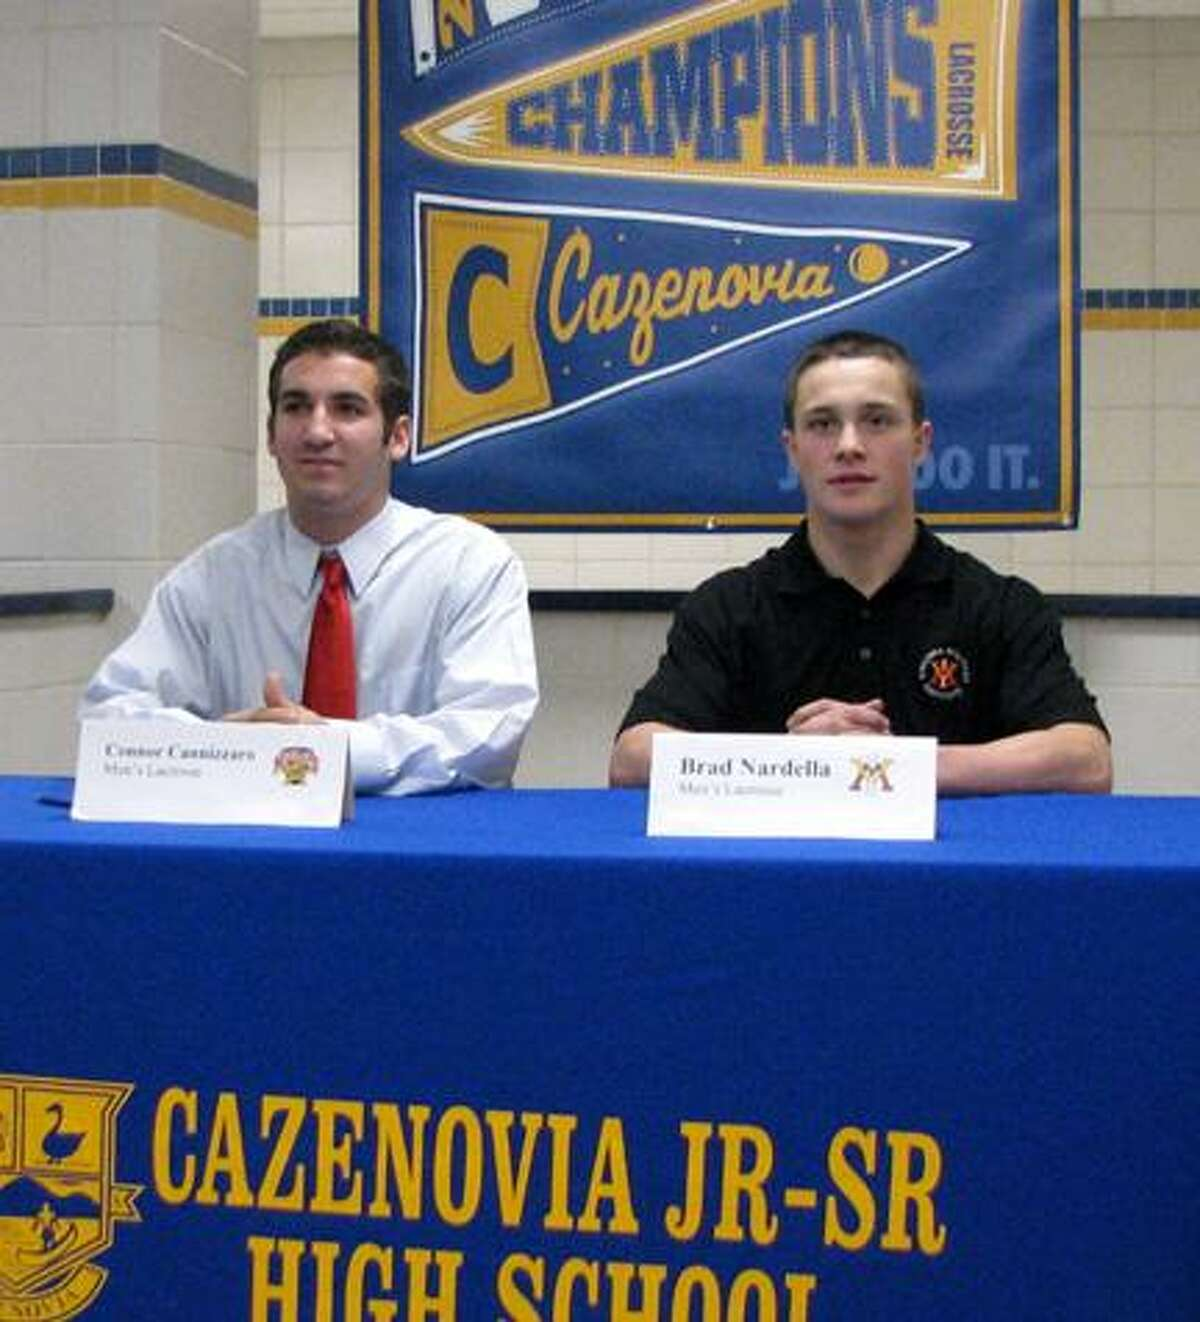 Submitted Photo Cazenovia's Connor Cannizzaro, left, and Brad Nardella signed their letters during a news conference at the high school Monday, November 19, 2012.